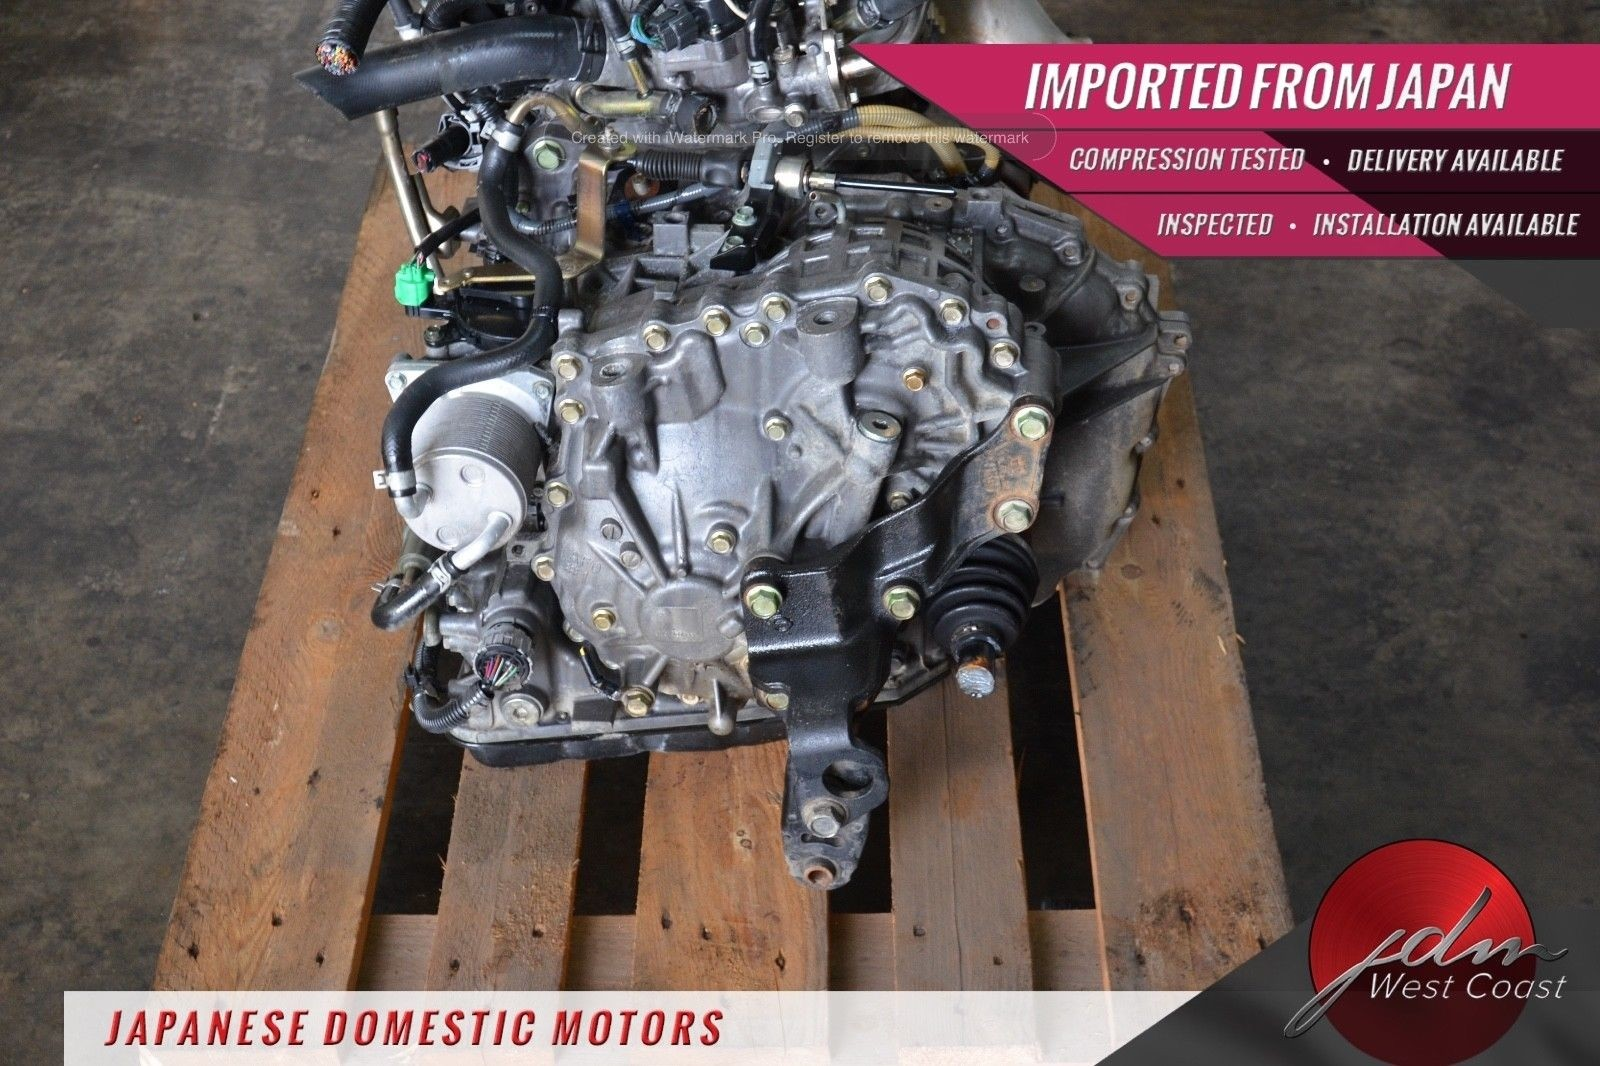 JDM Nissan Sentra Mr20de 07-08 CVT Automatic *Transmission ONLY* 2.0L 4CYL Mr20